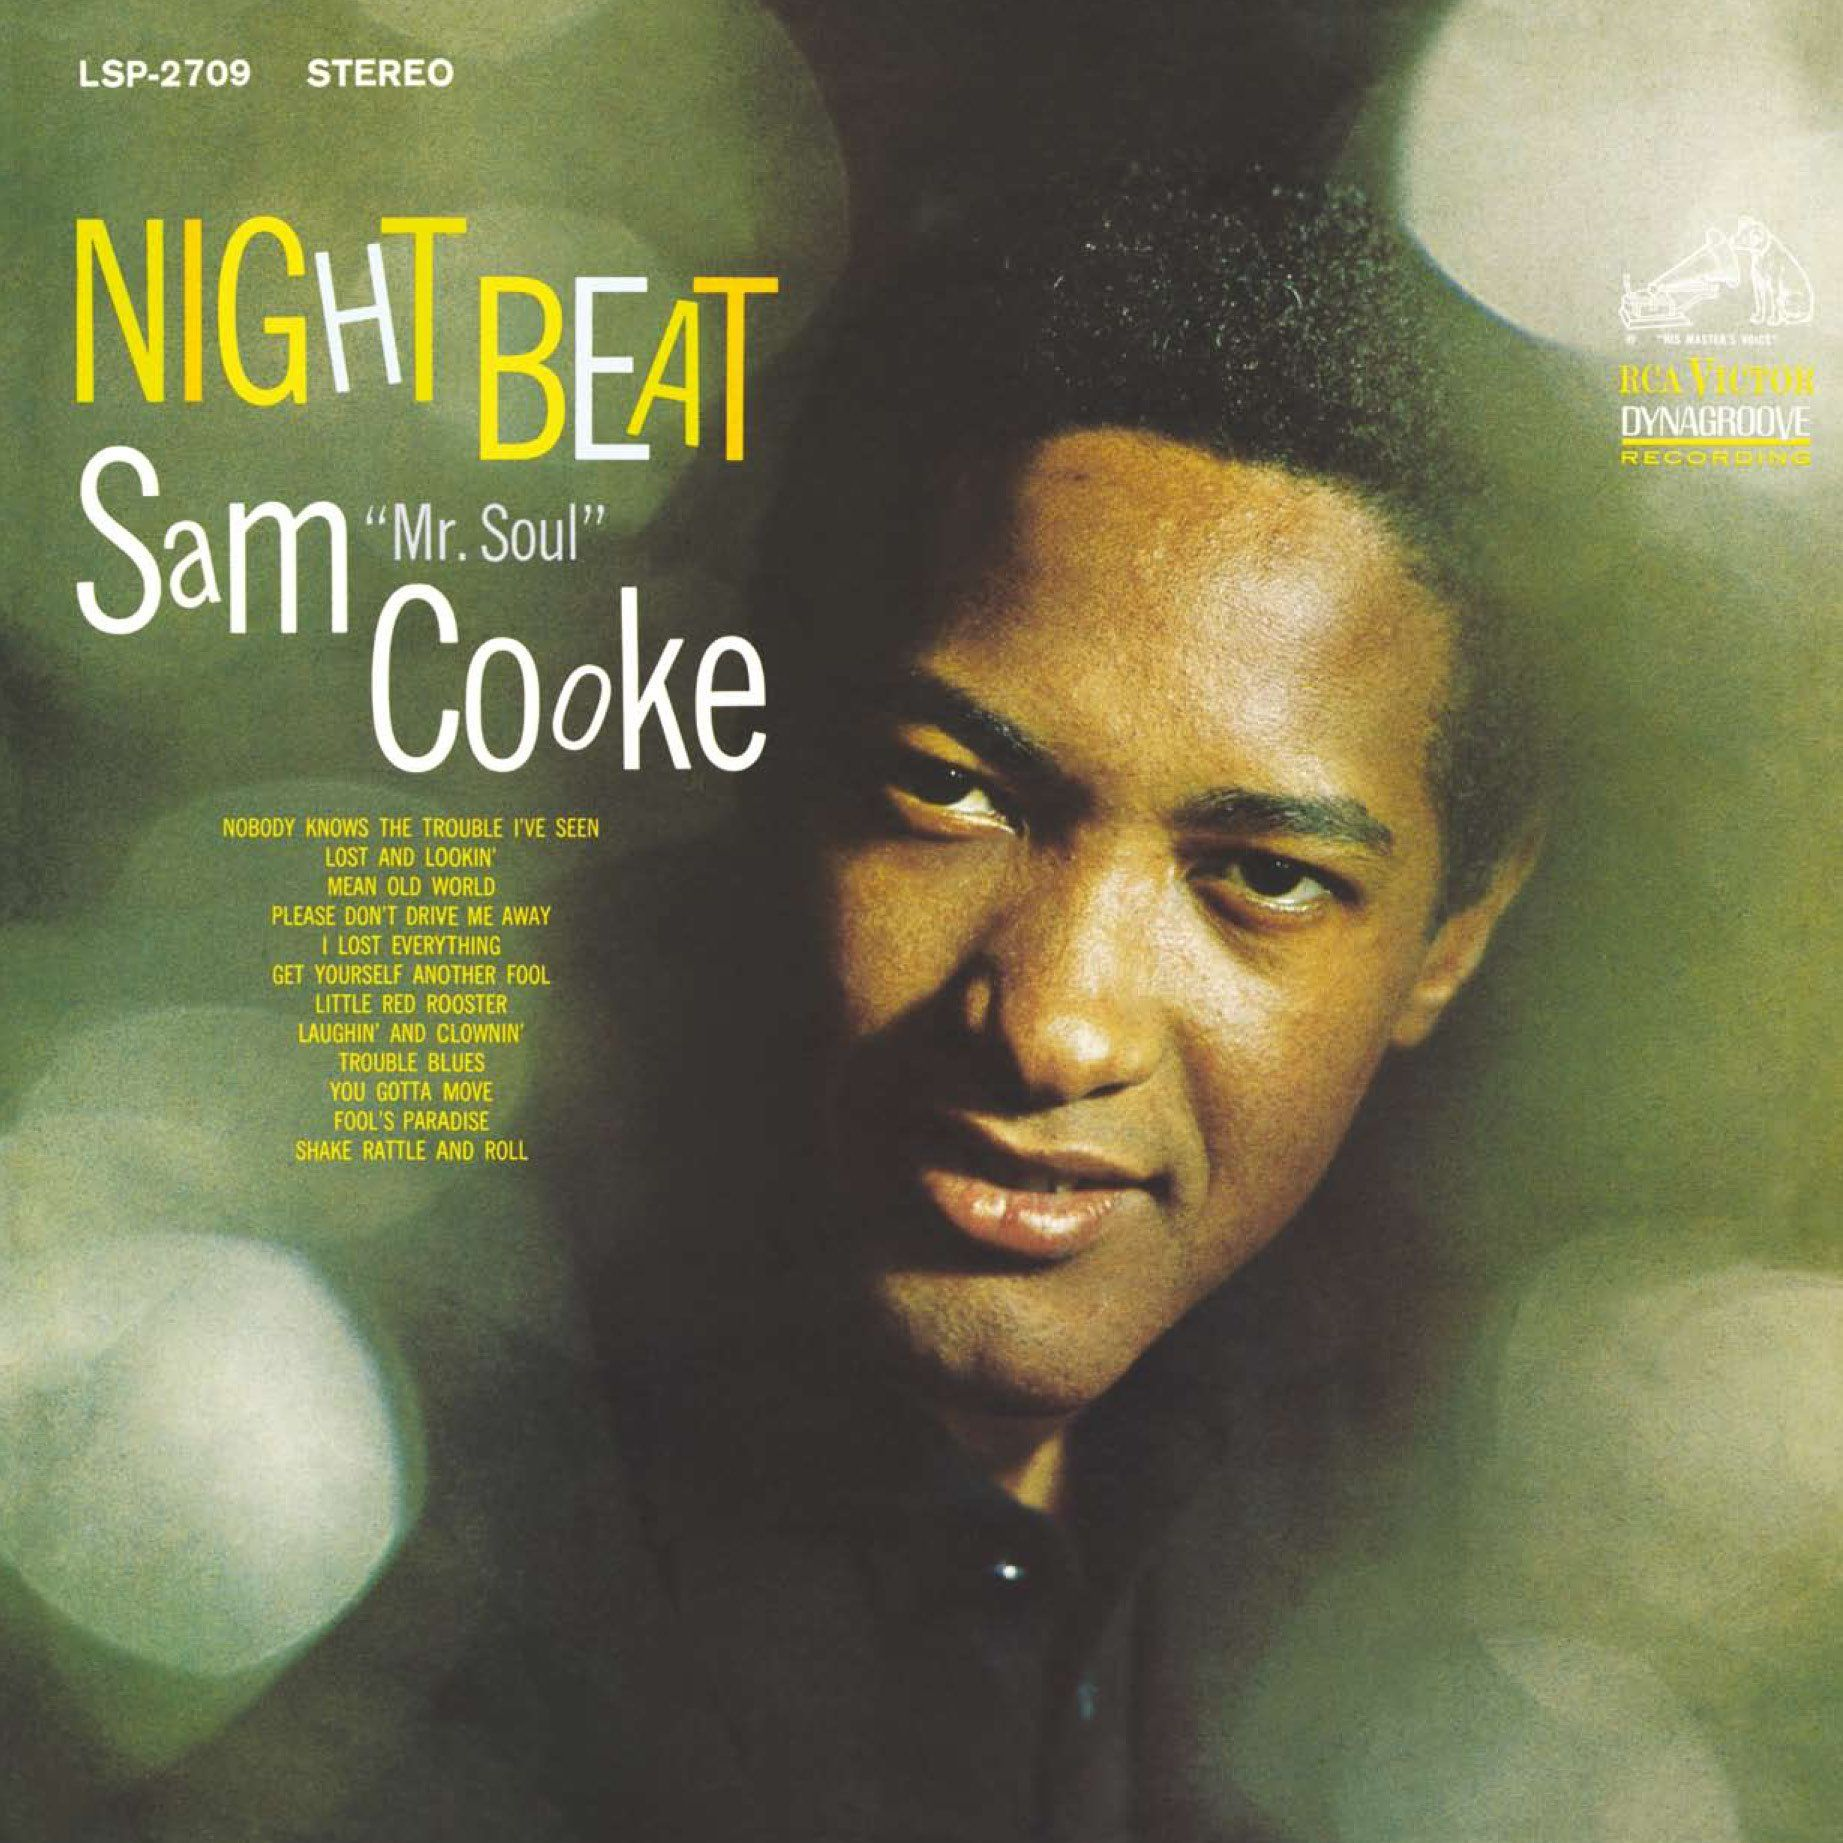 Sam Cooke Night Beat [1843 x 1843] Sam cooke, Soul